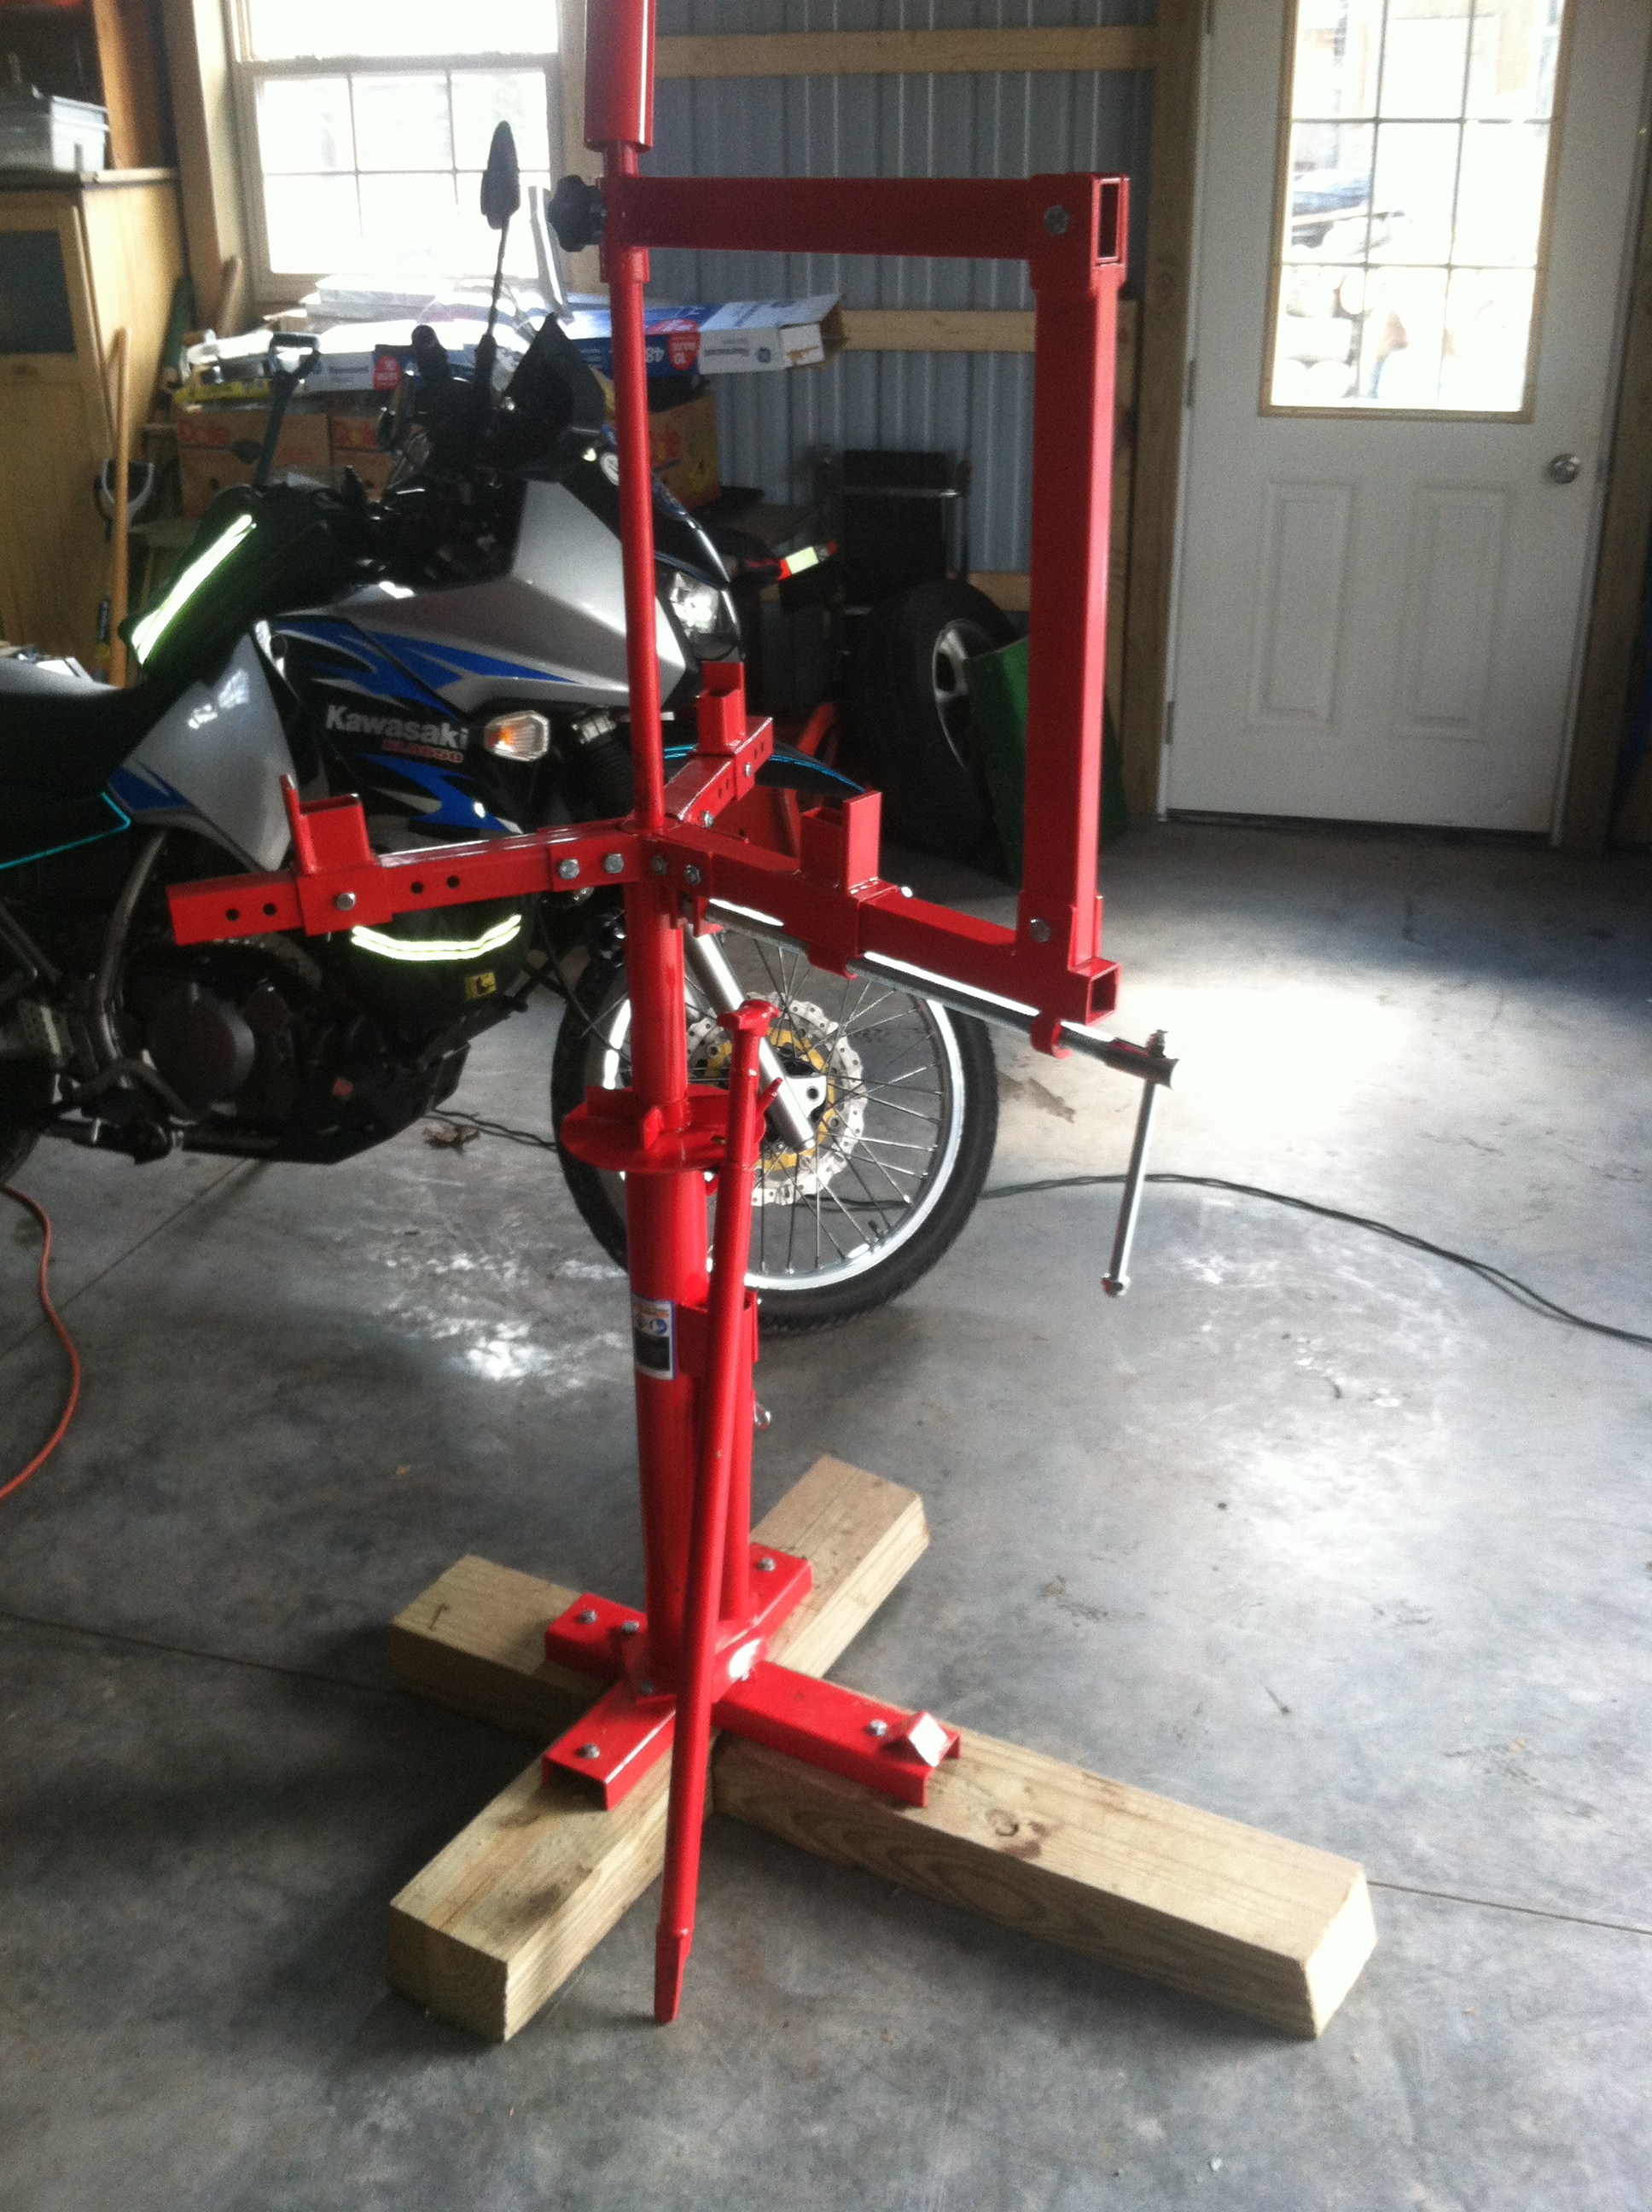 Motorcycle Tire Changing Is Getting Better With The Right Equipment